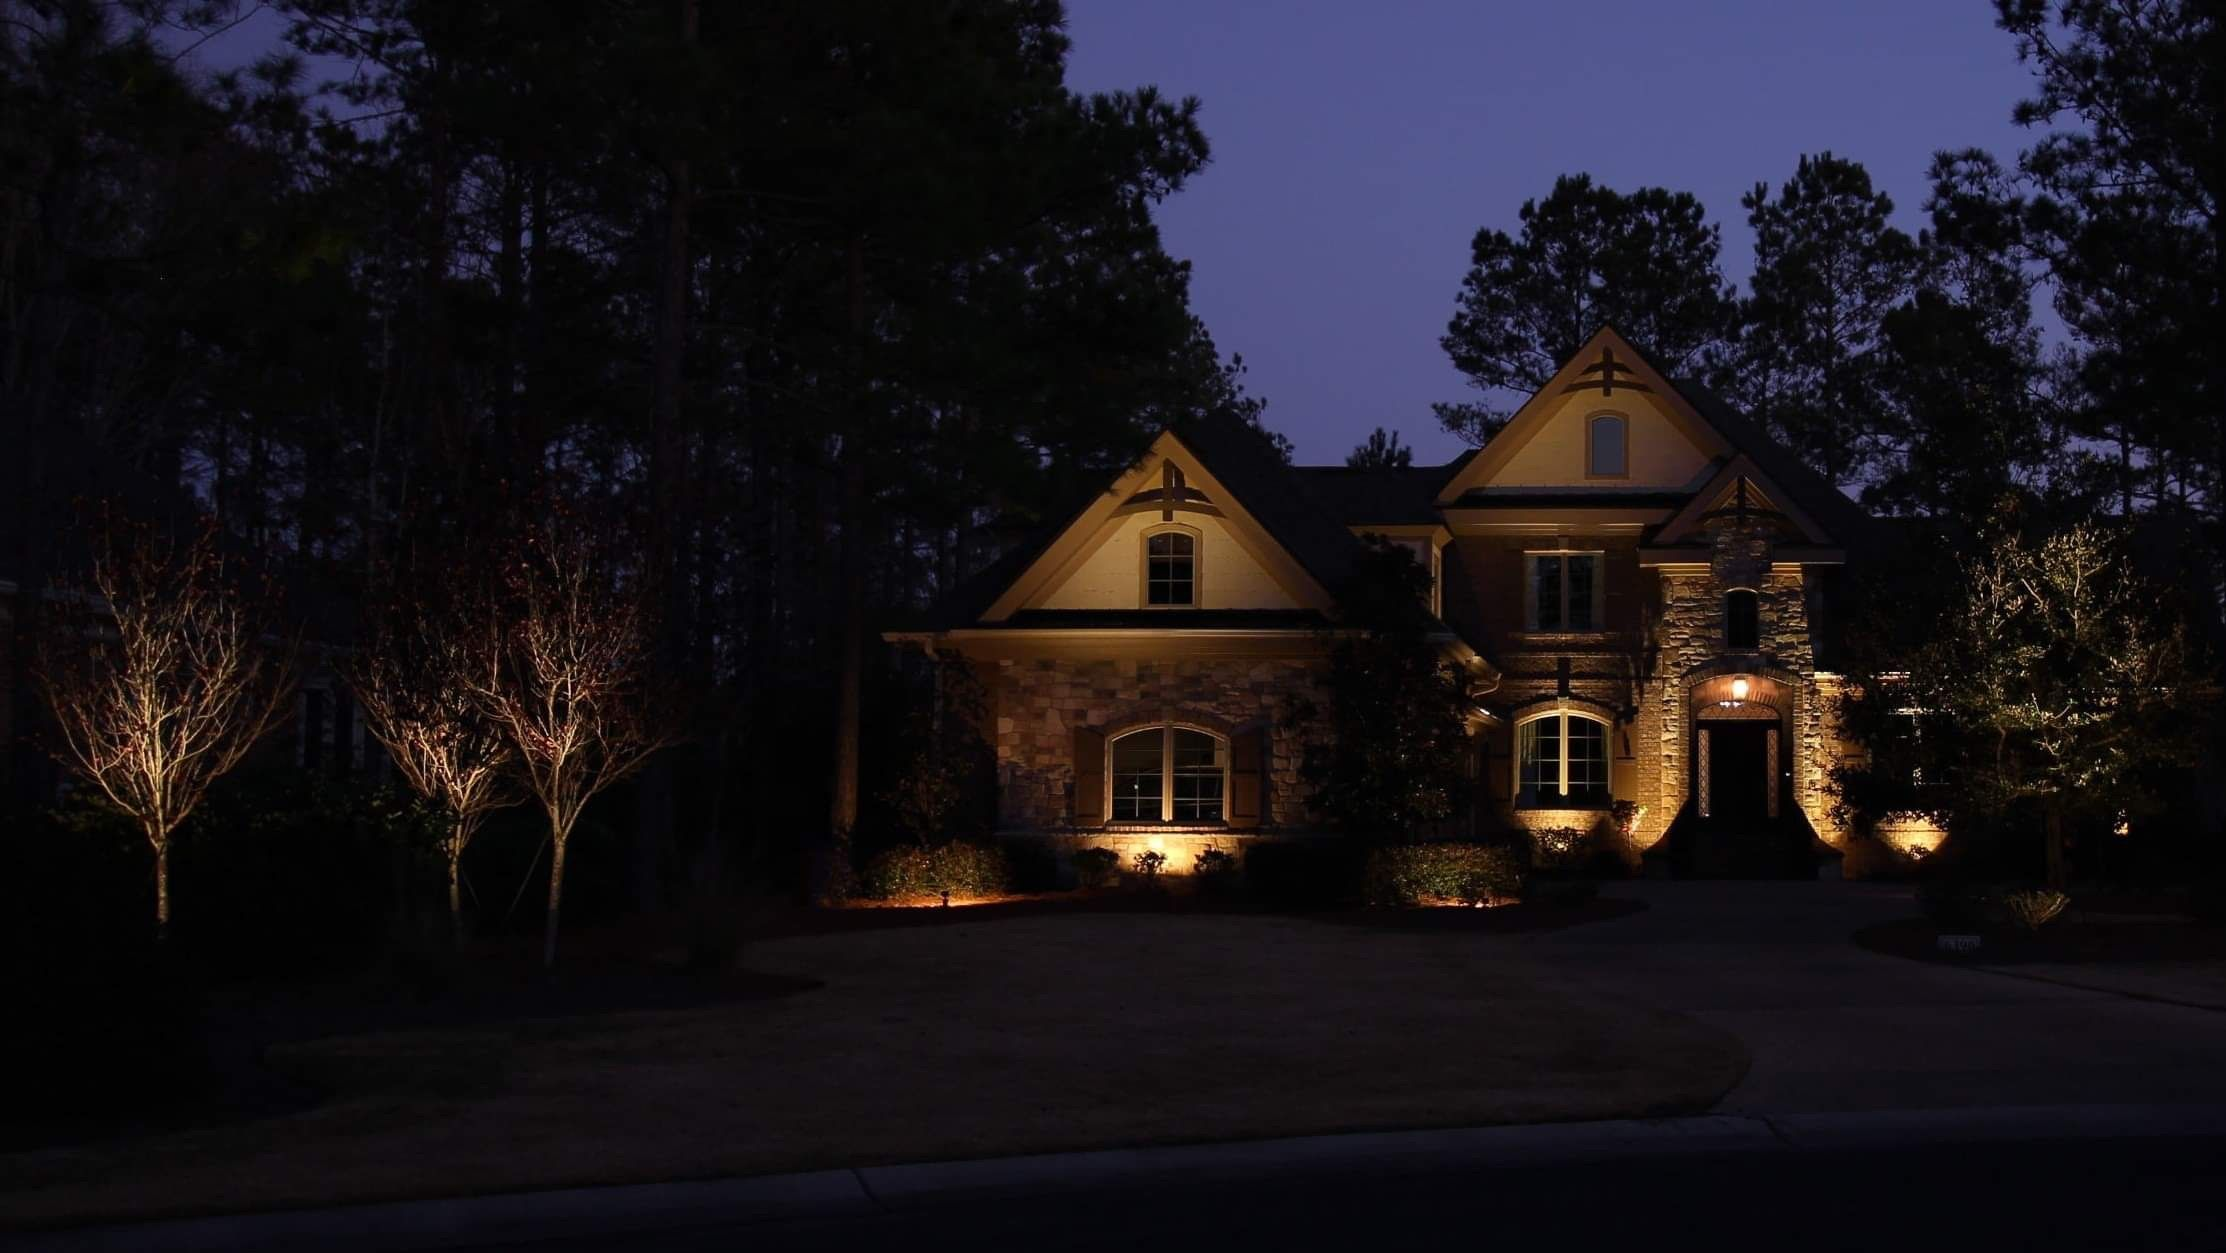 Add Outdoor Lighting For Security With An Aesthetic Appeal Free Consults To Coastal Carolina Reside Outdoor Lighting Holiday Lights Outdoor Landscape Lighting